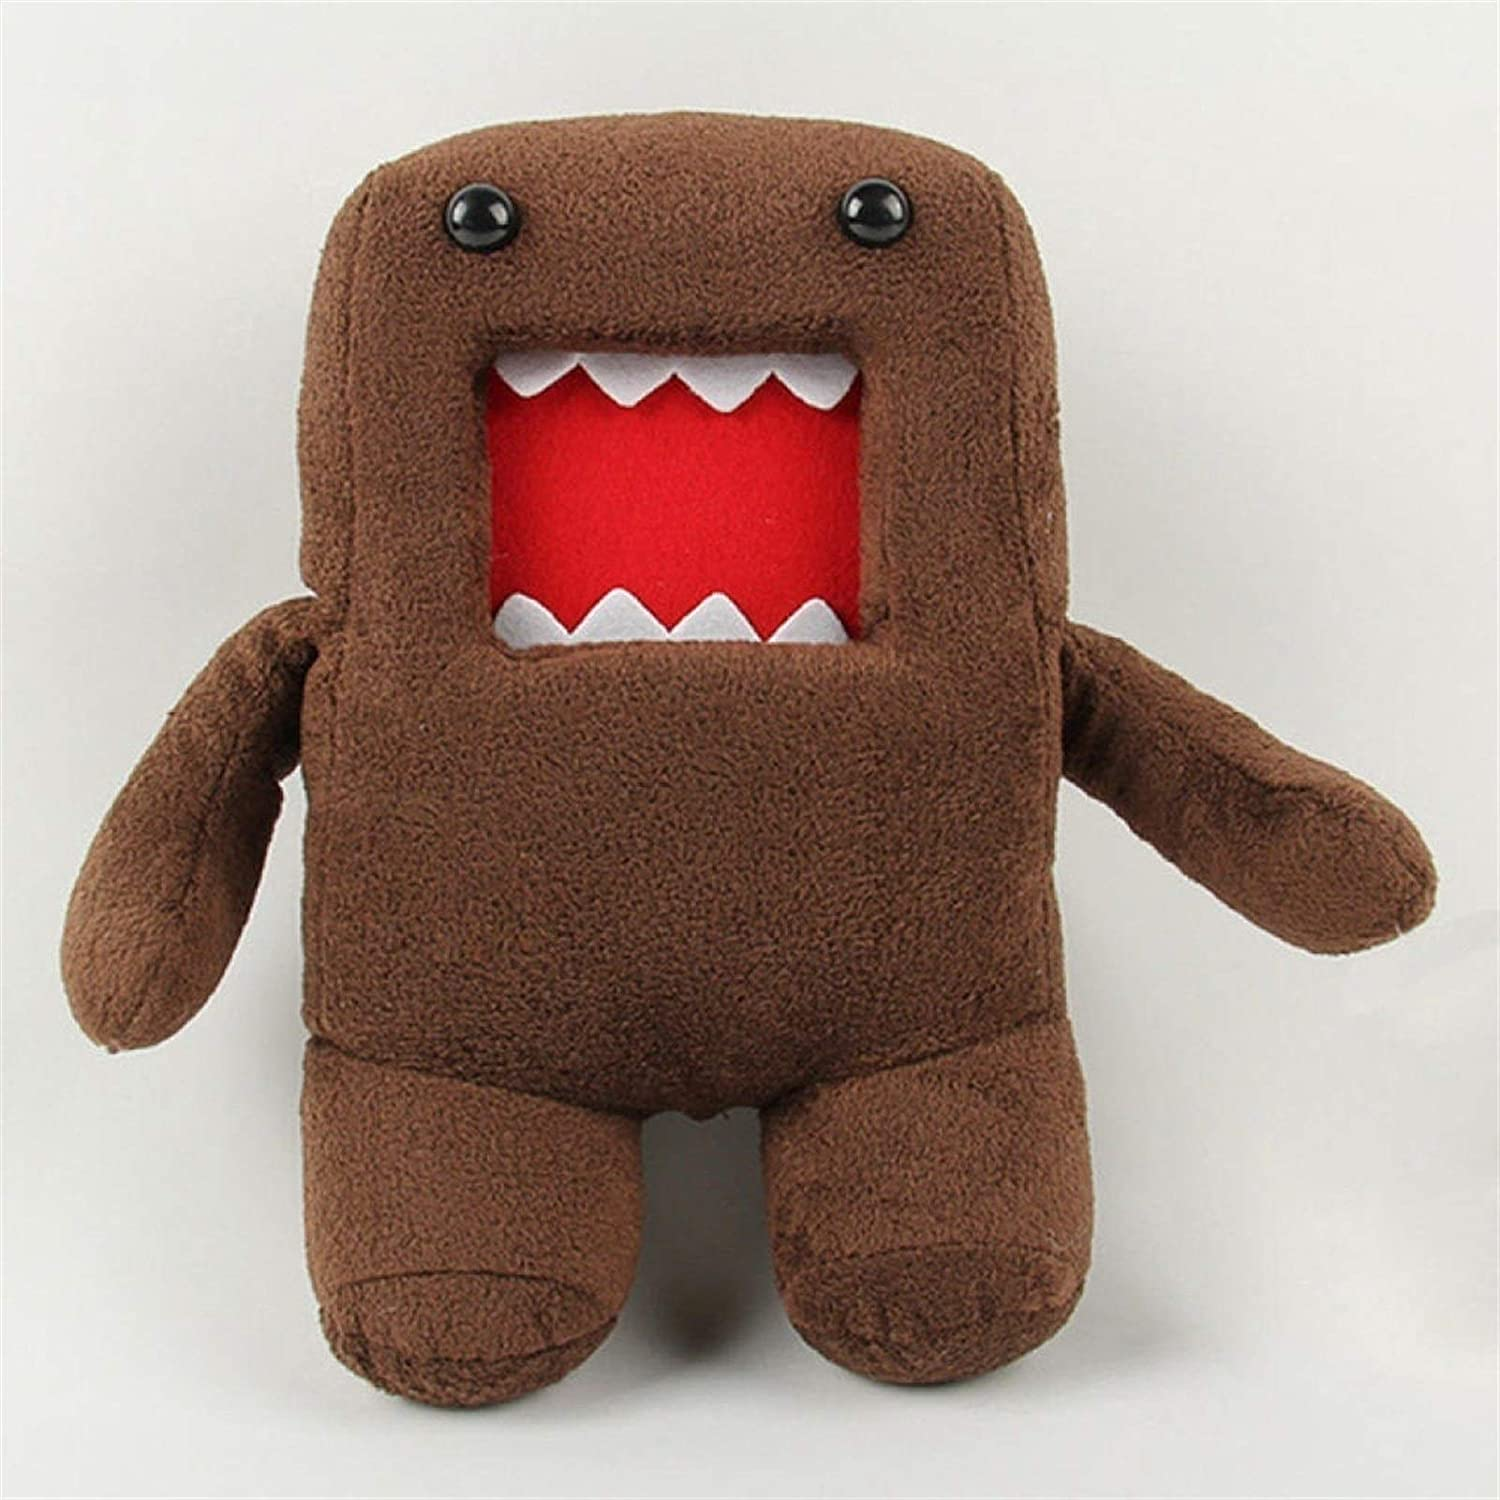 Comfortable and Durable Plush Doll T Creative Gift Direct store Novelty Super sale